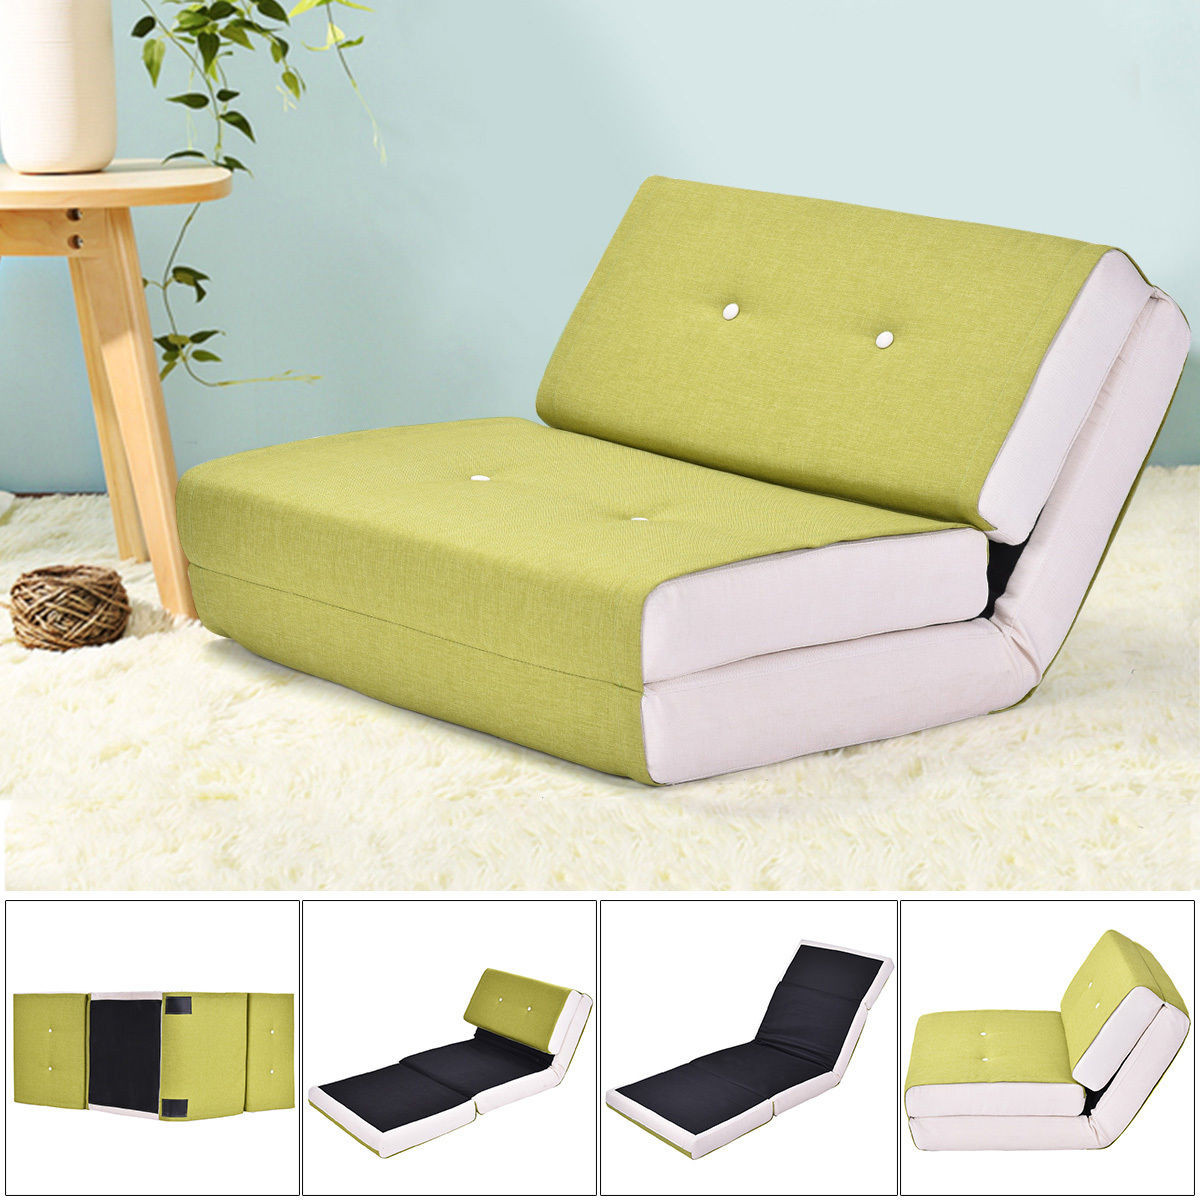 Costway Fold Down Chair Flip Out Lounger Convertible Sleeper Bed Couch Game Dorm Green